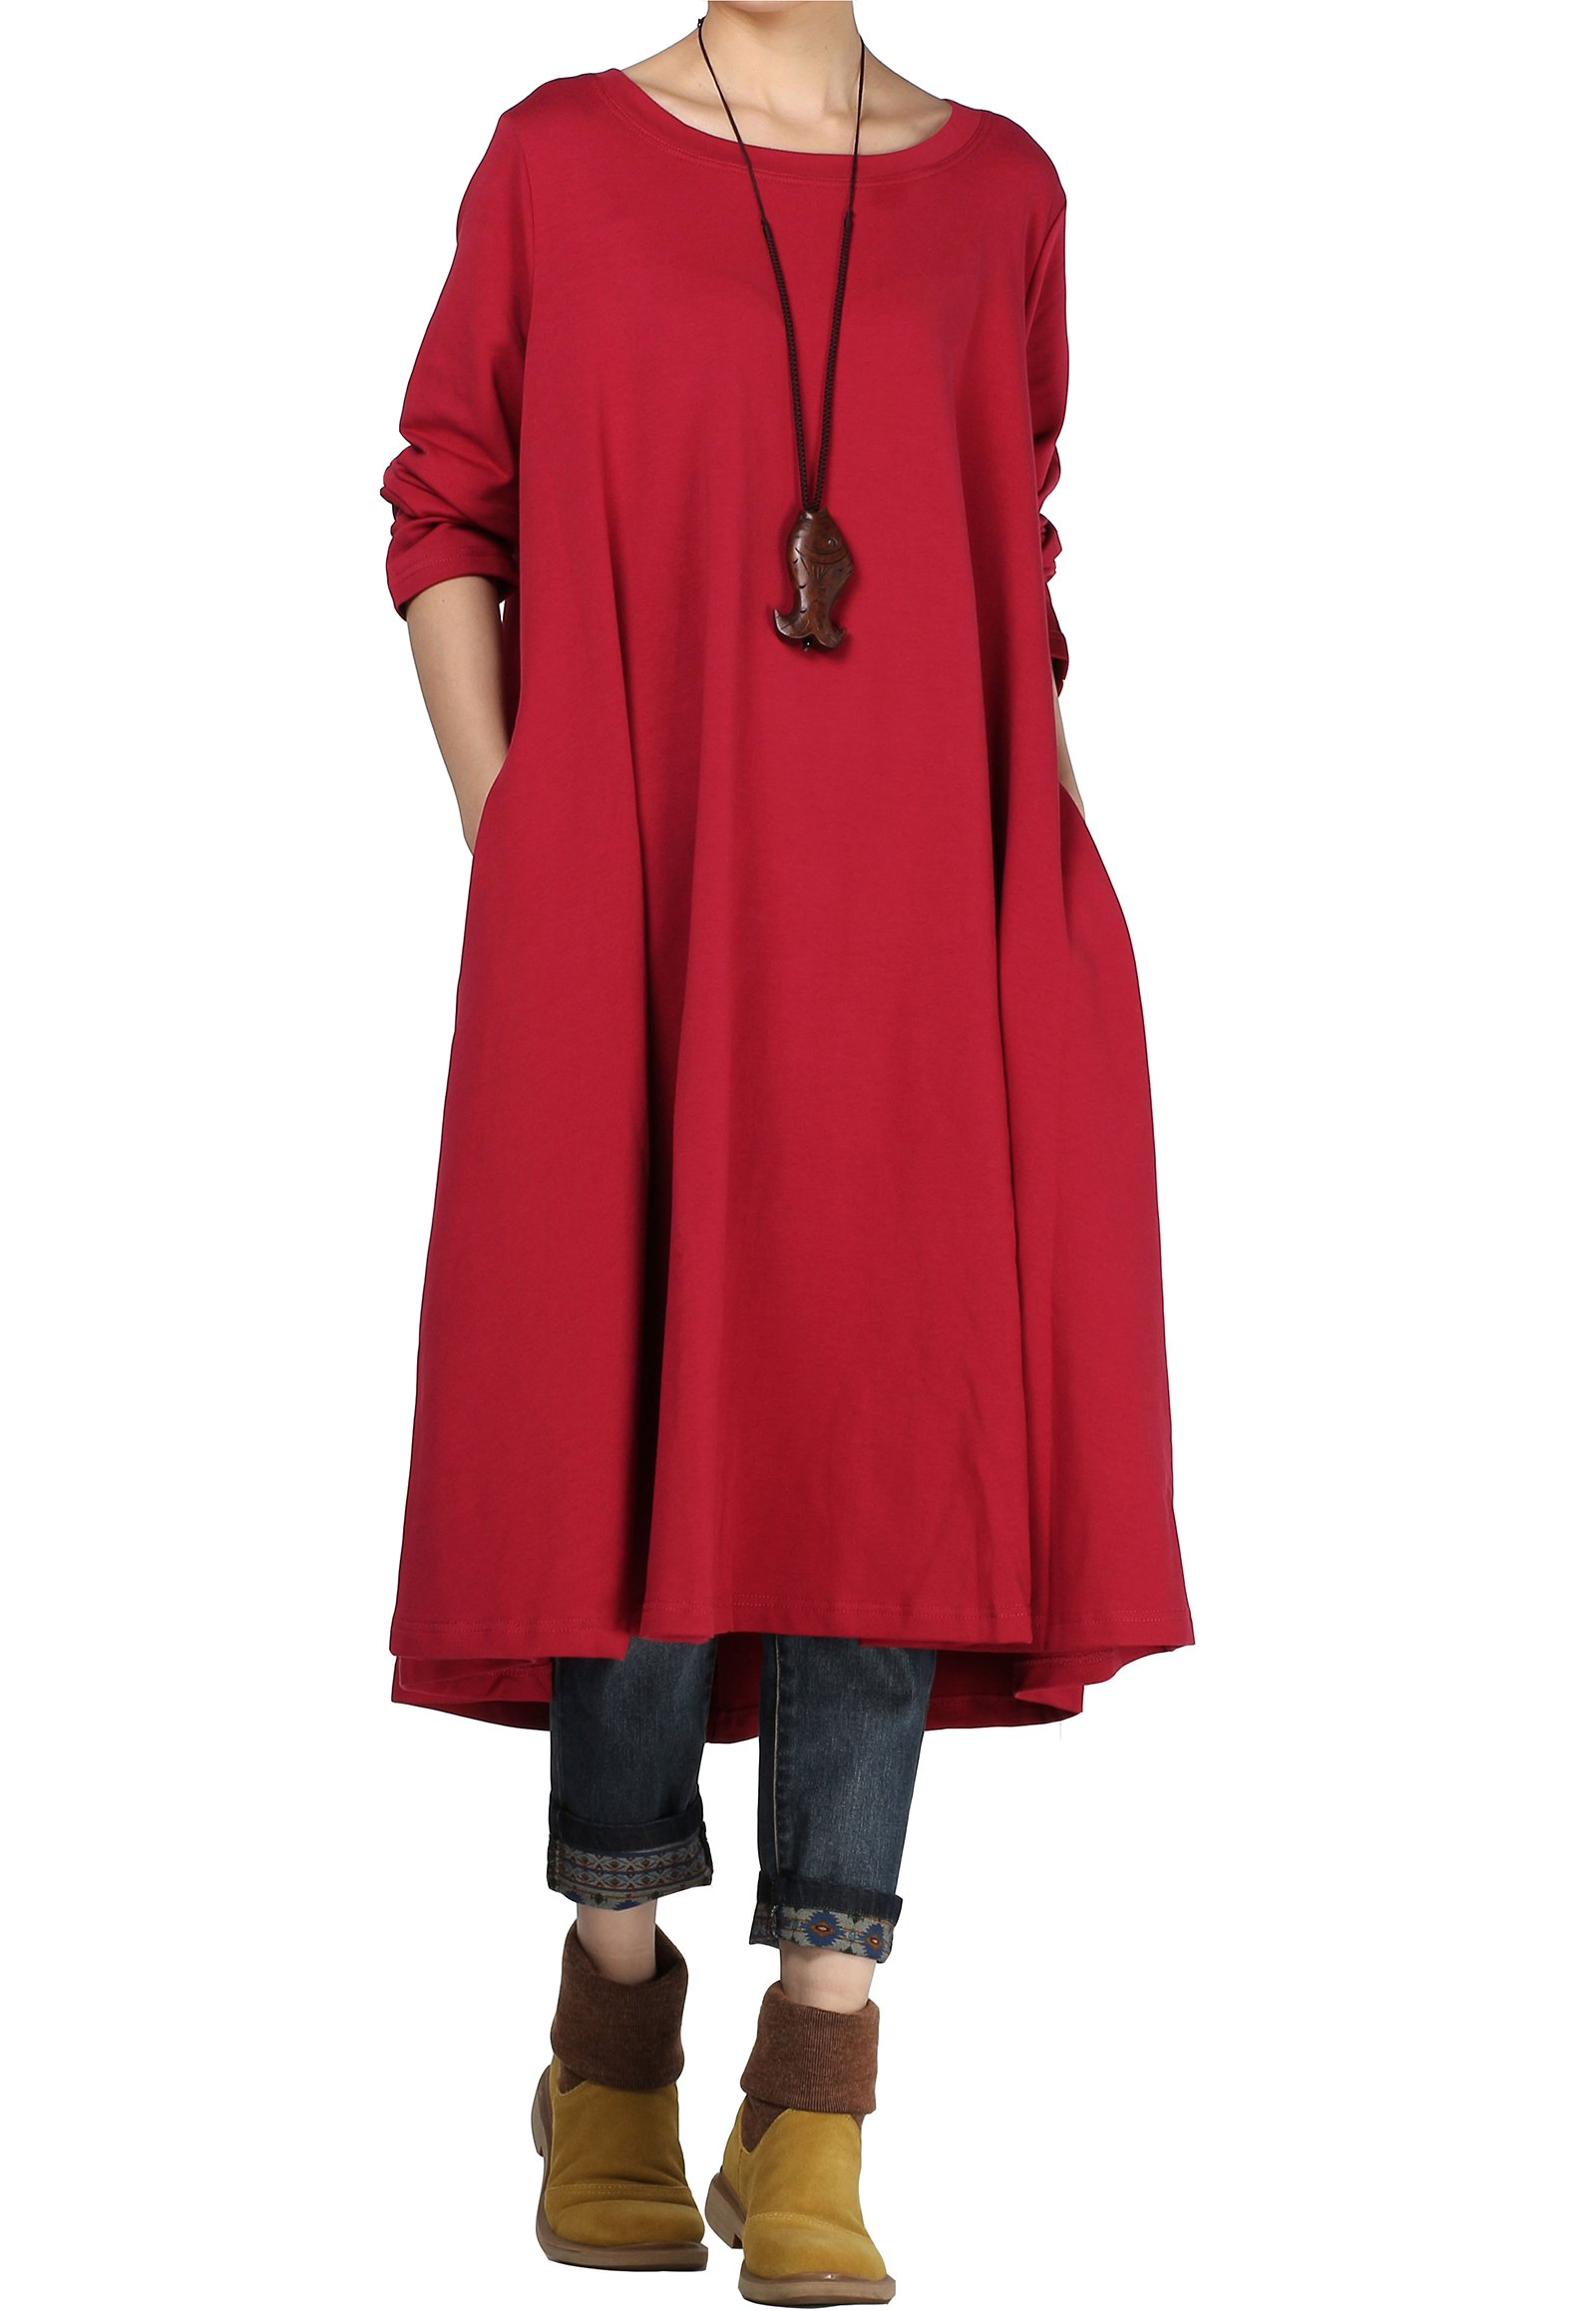 Mordenmiss Women's New Spring/Fall Round Neck Pullover Dress - Large  - Style 1 Burgundy